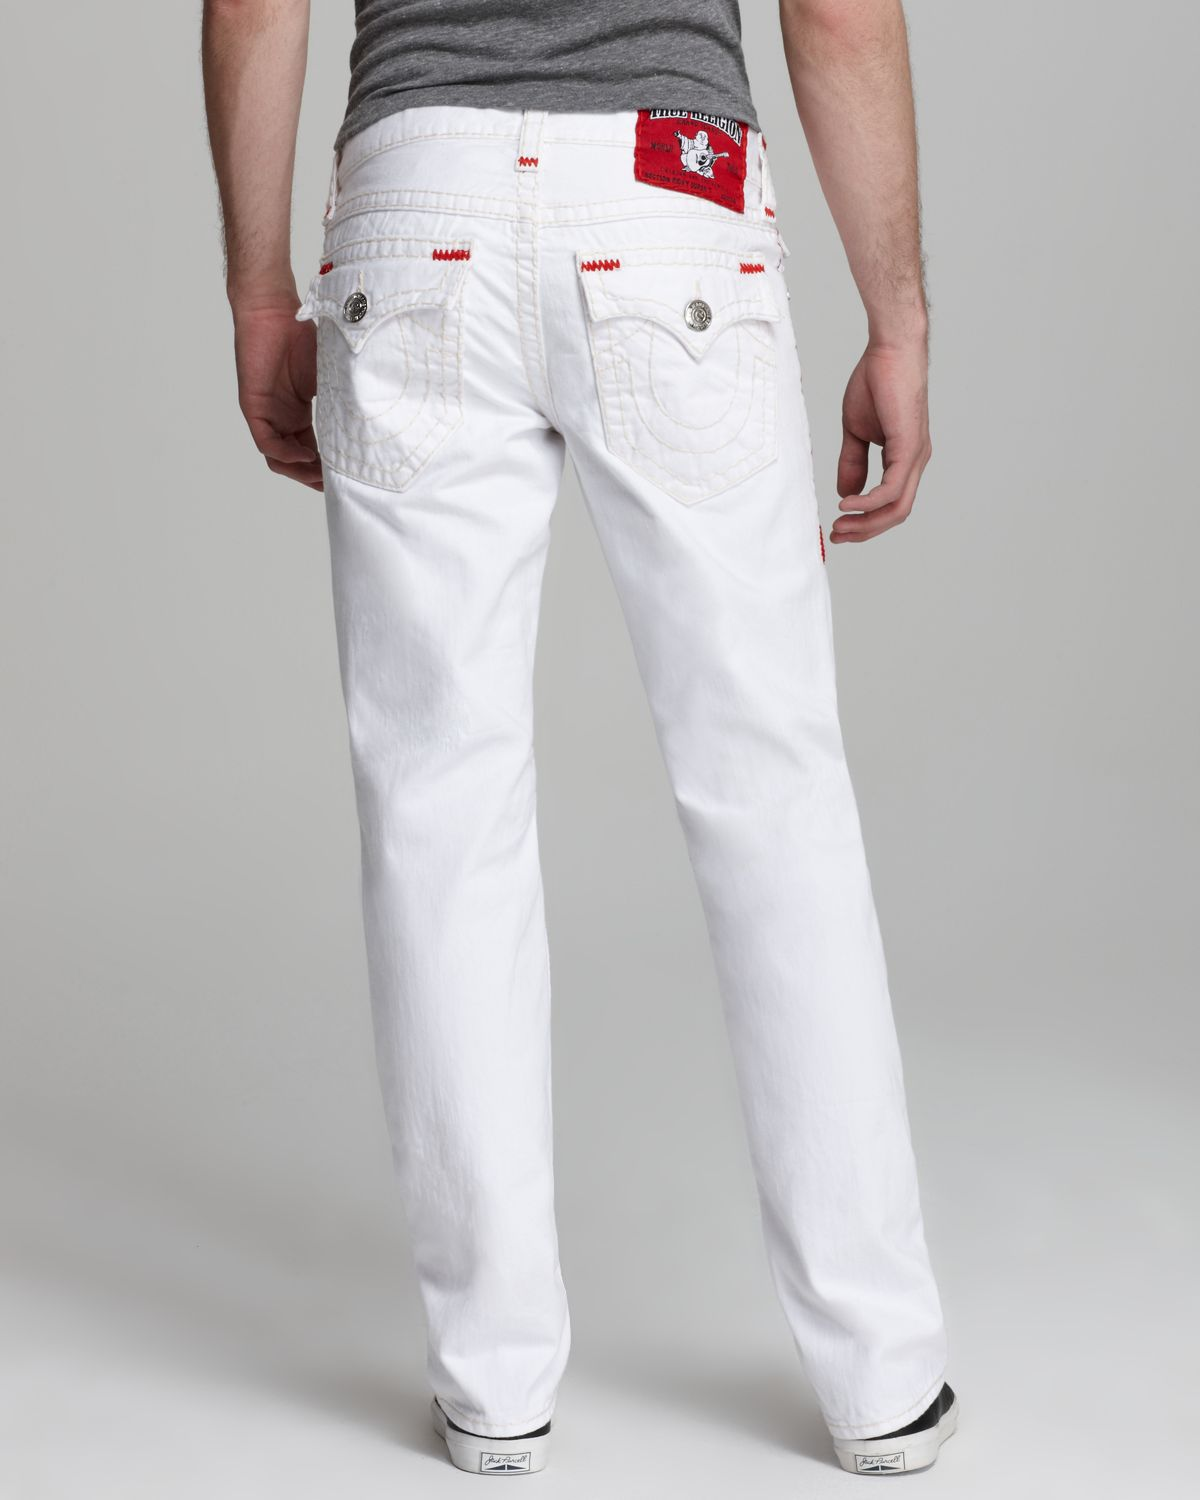 Lyst - True Religion Jeans Ricky Super T Straight Fit in ...